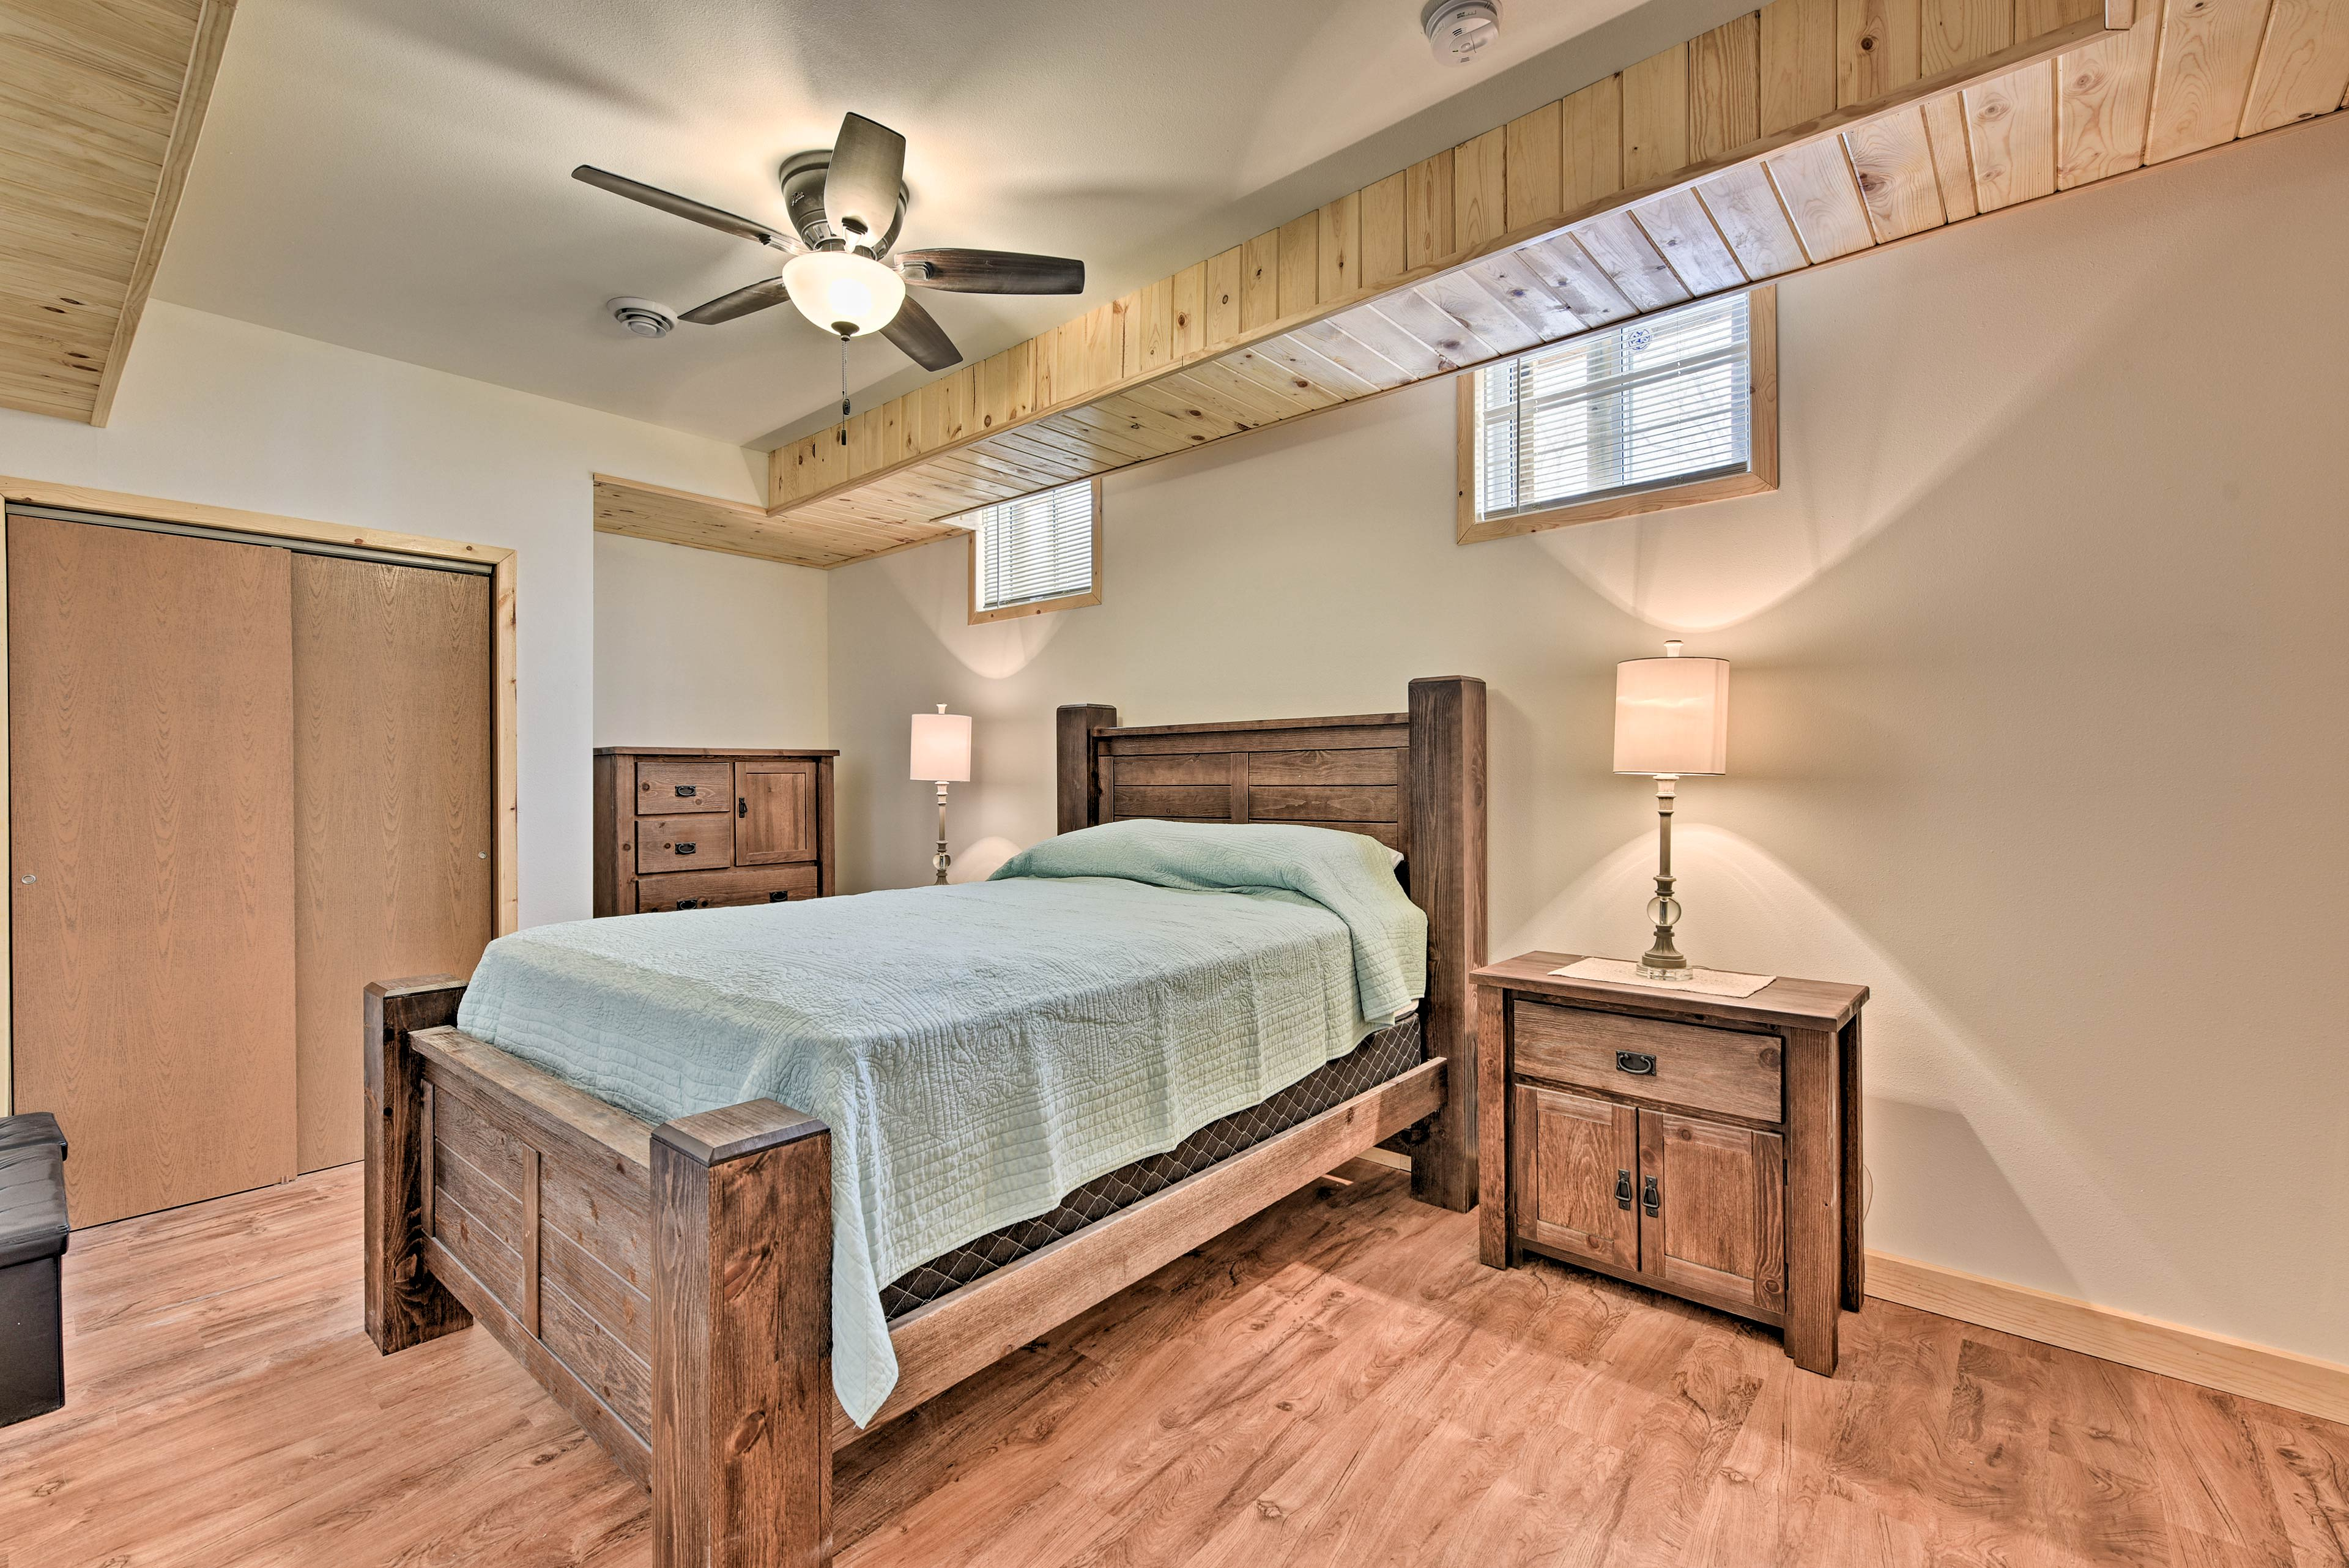 Wood accents add a cozy feel to the room.